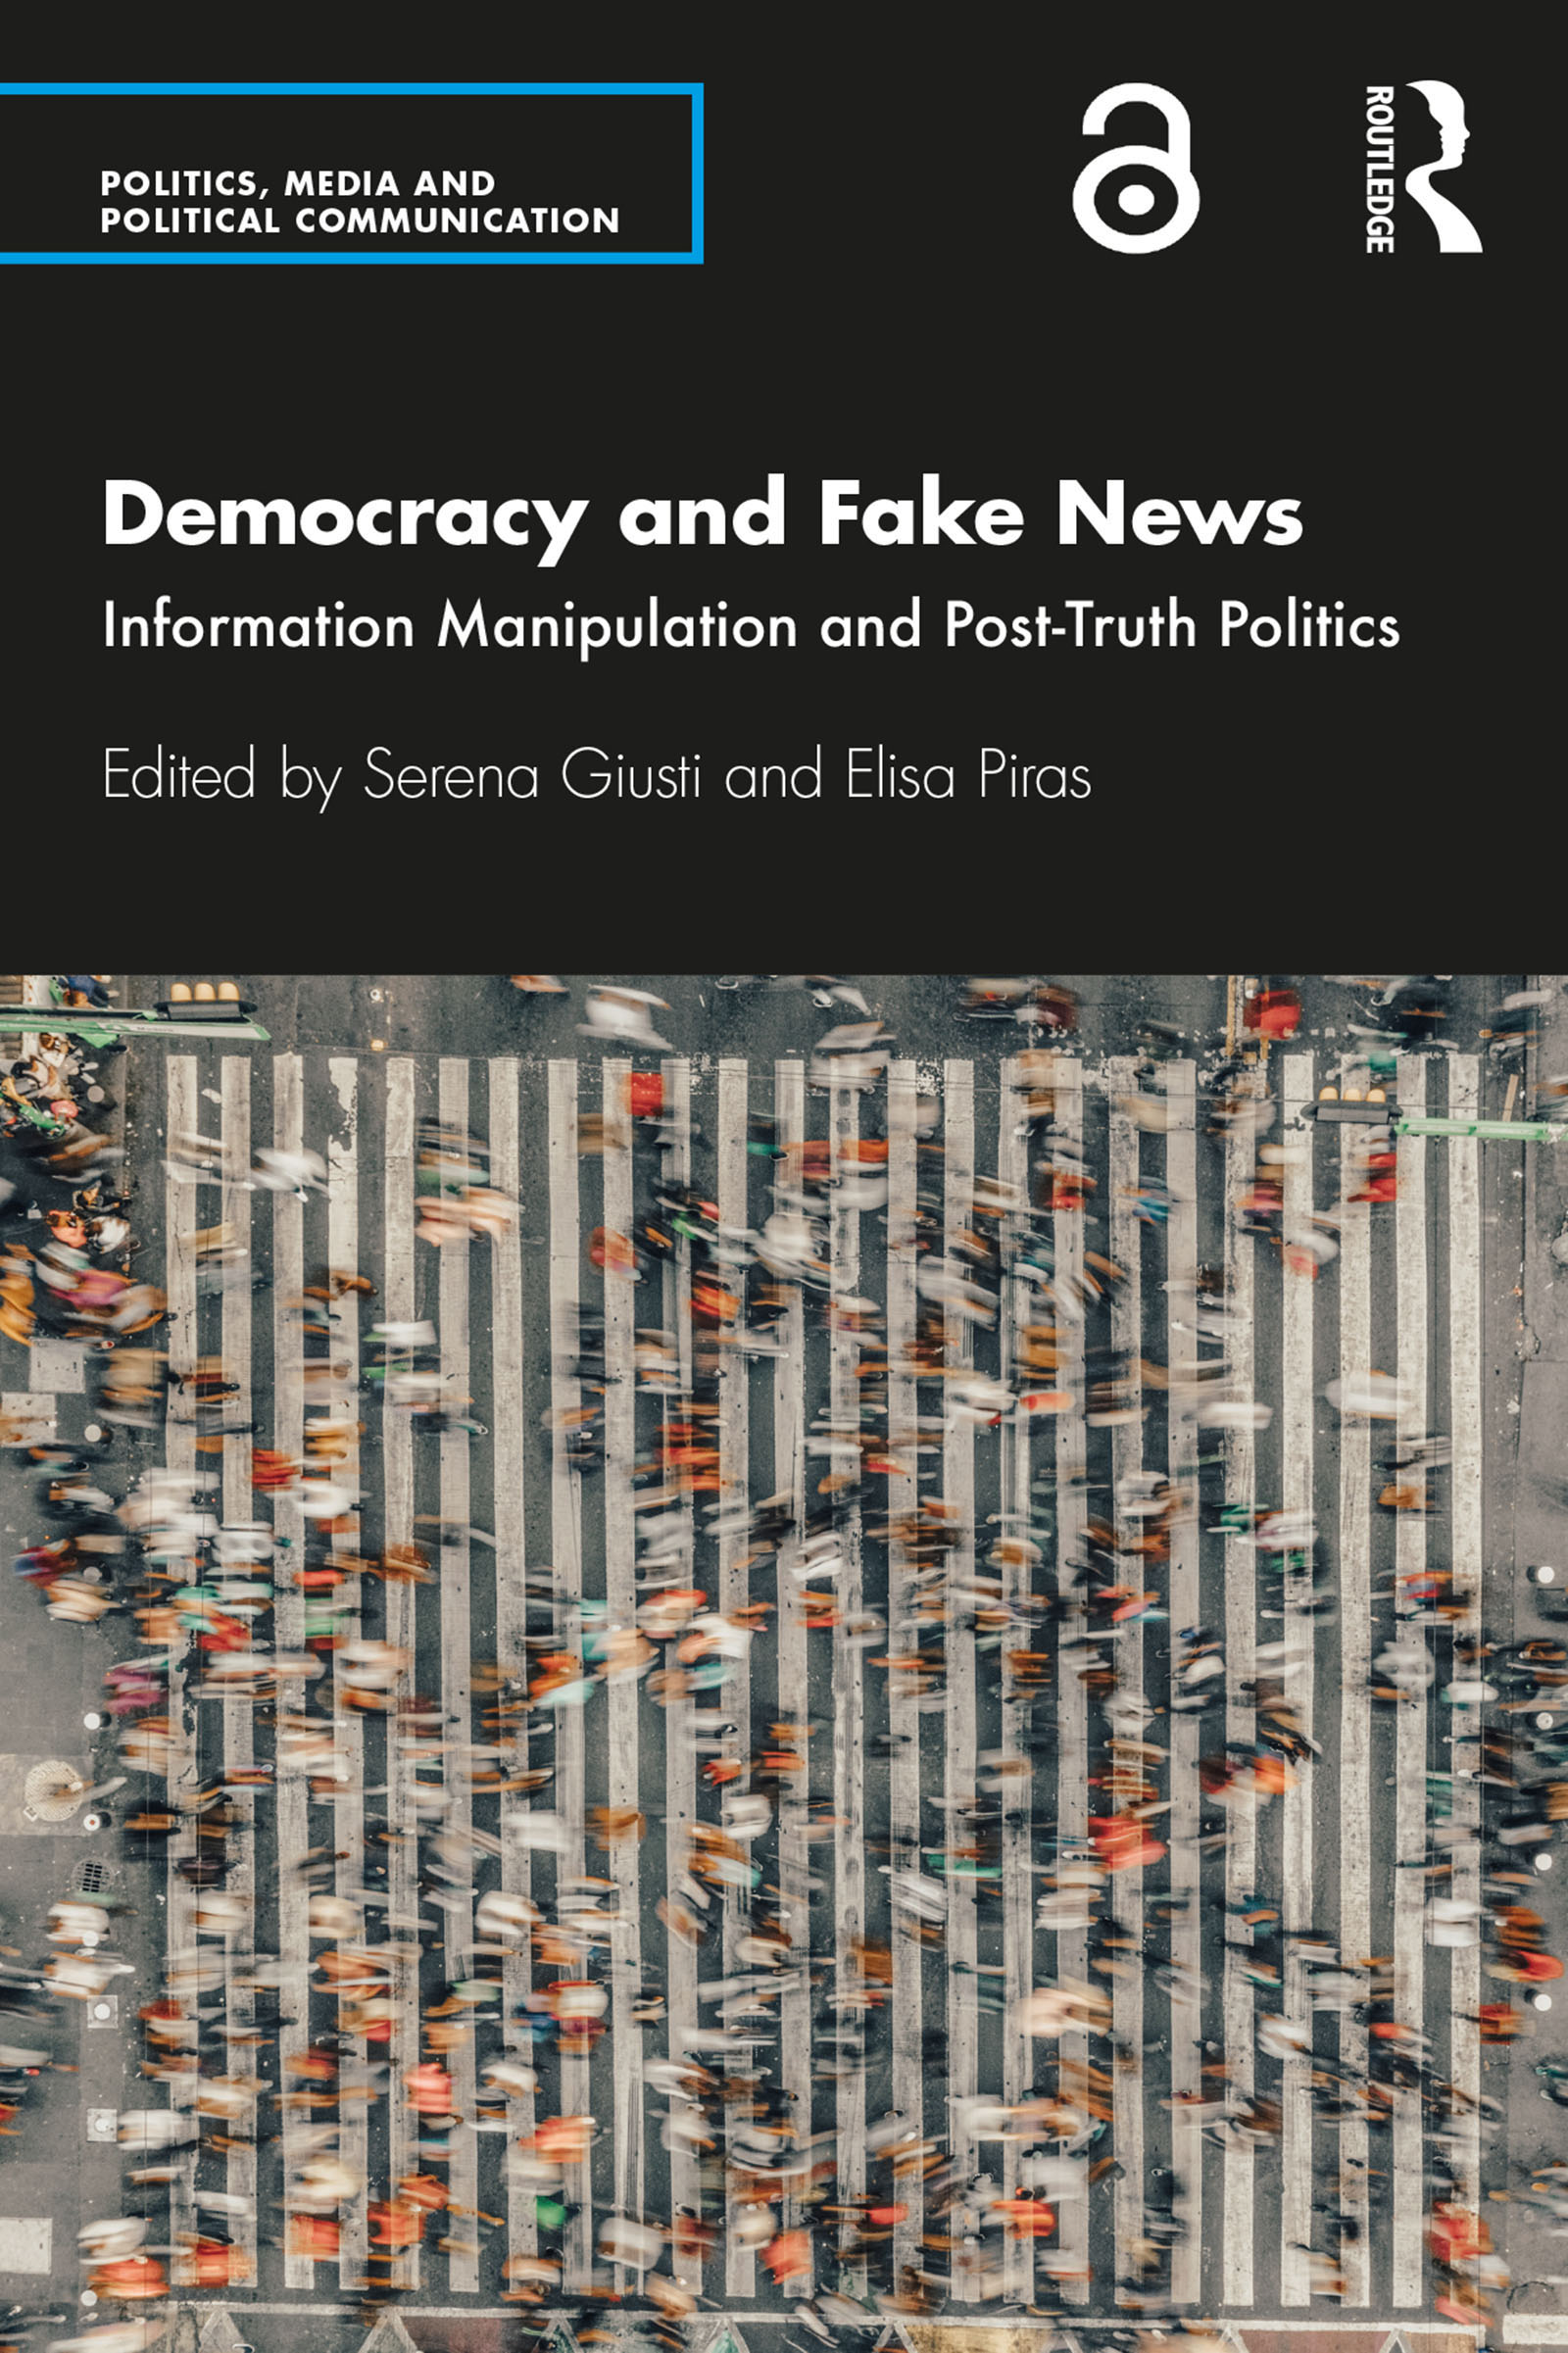 Democracy and Fake News